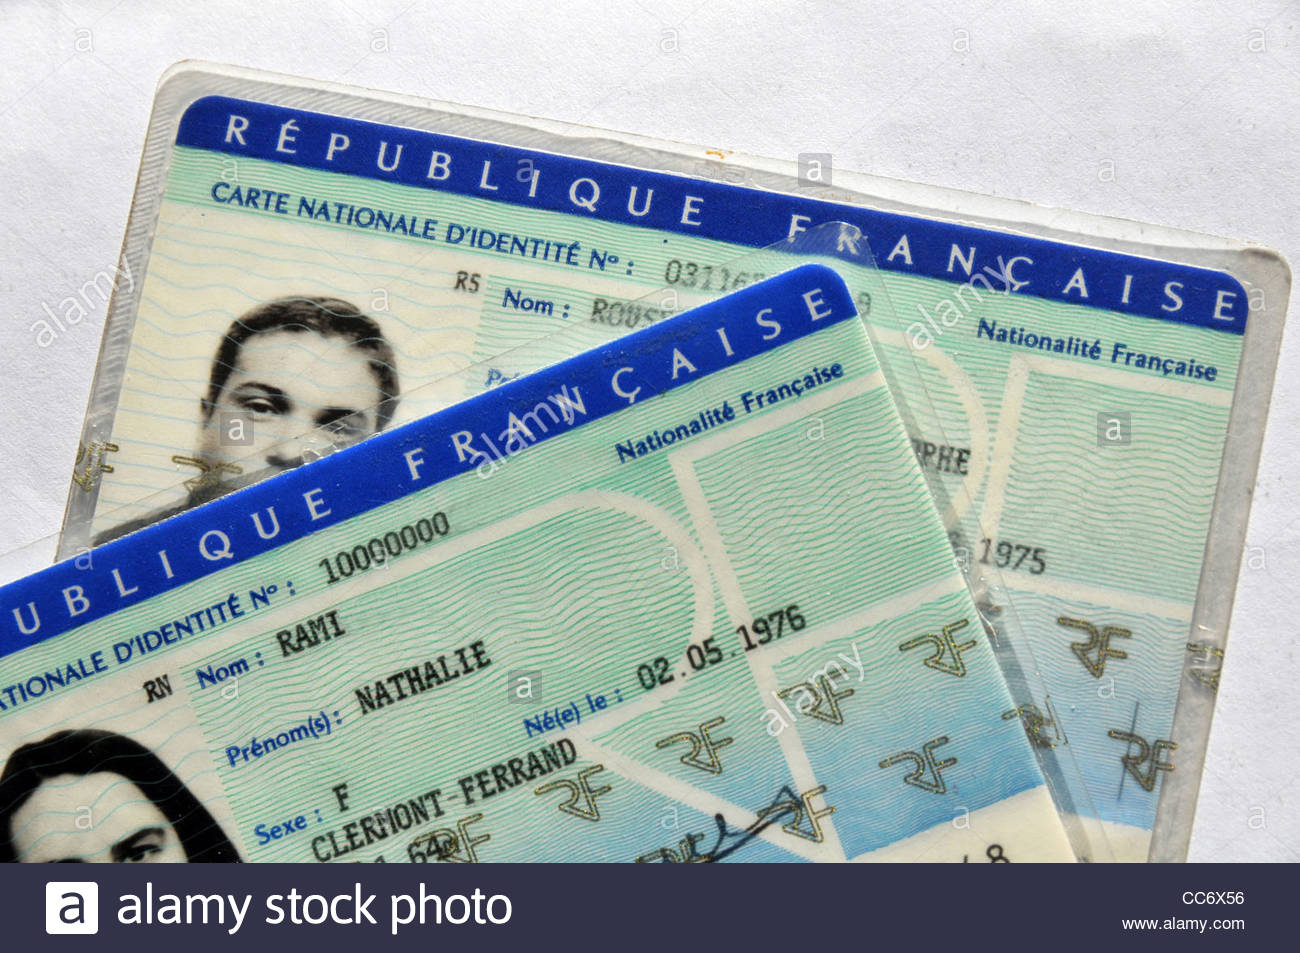 French identity cards - Stock Image